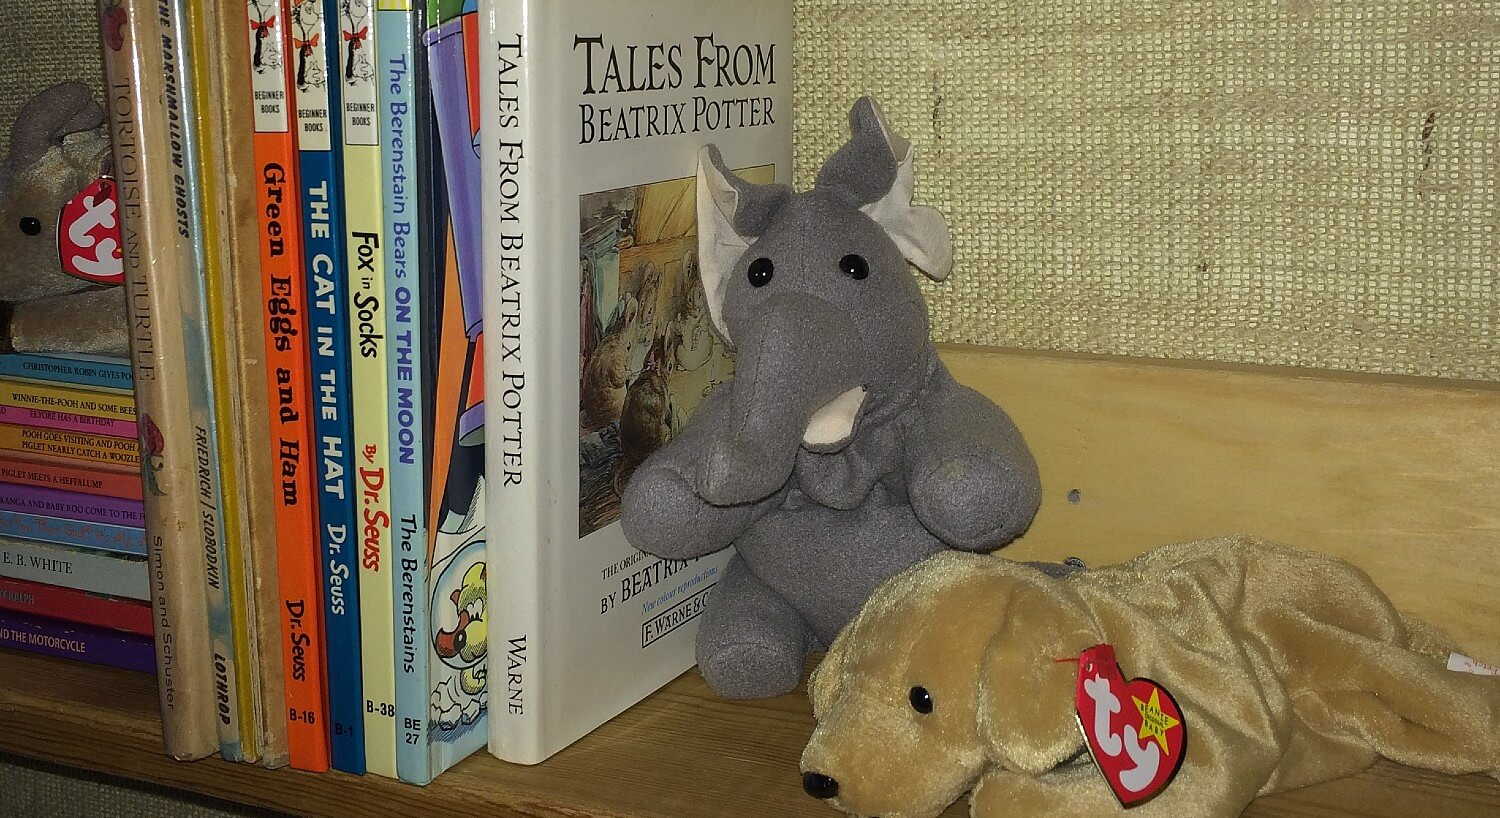 Bookshelf holding several children's books and two stuffed toys; a dog and an elephant